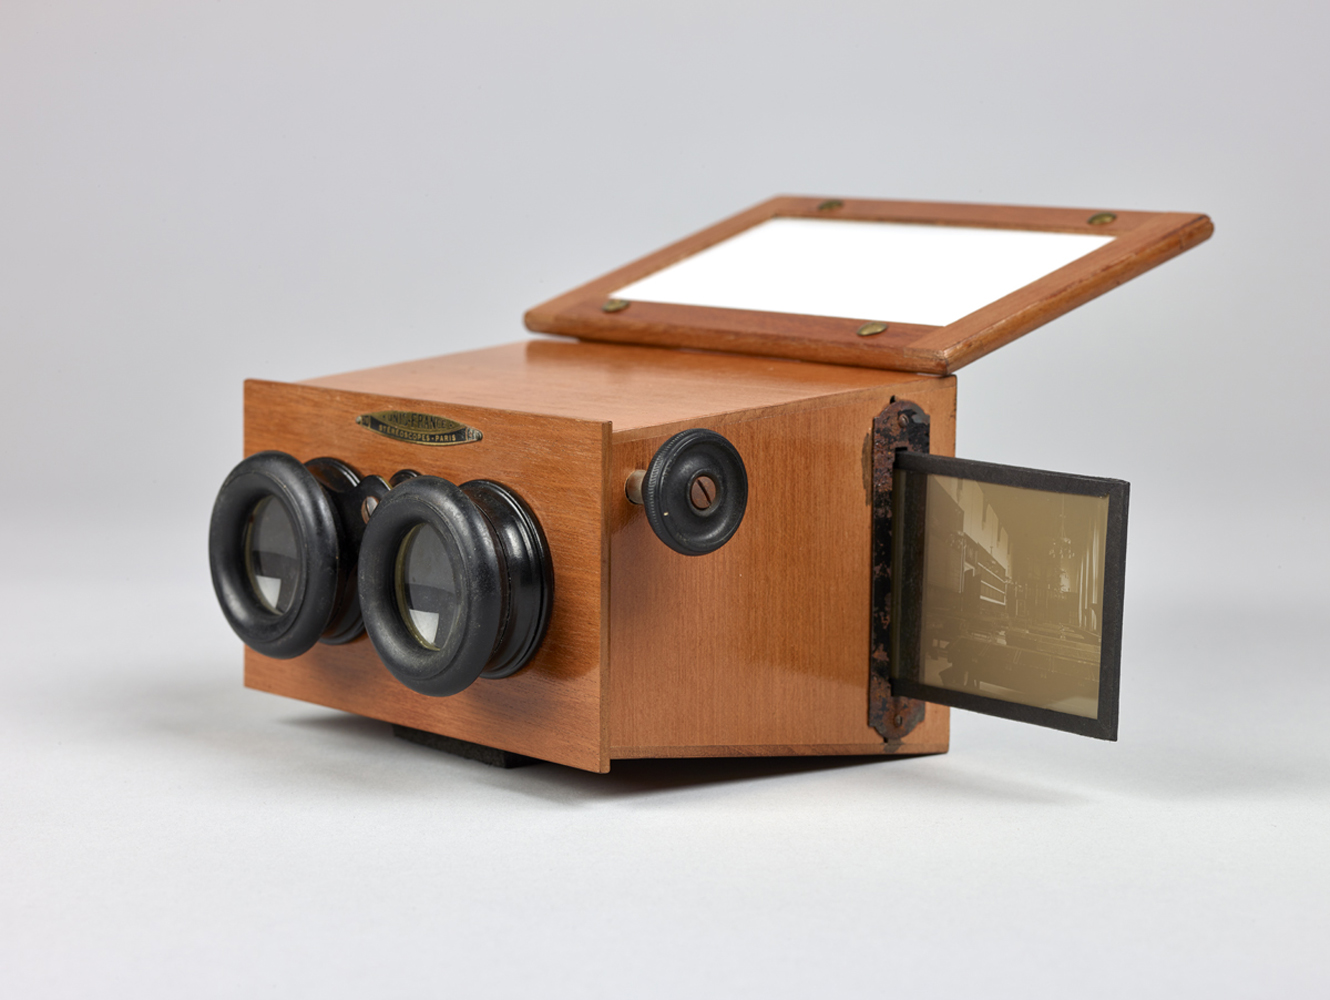 http://davidrowan.org/files/gimgs/54_ke-archive-stereoscope-viewer-two-20.jpg